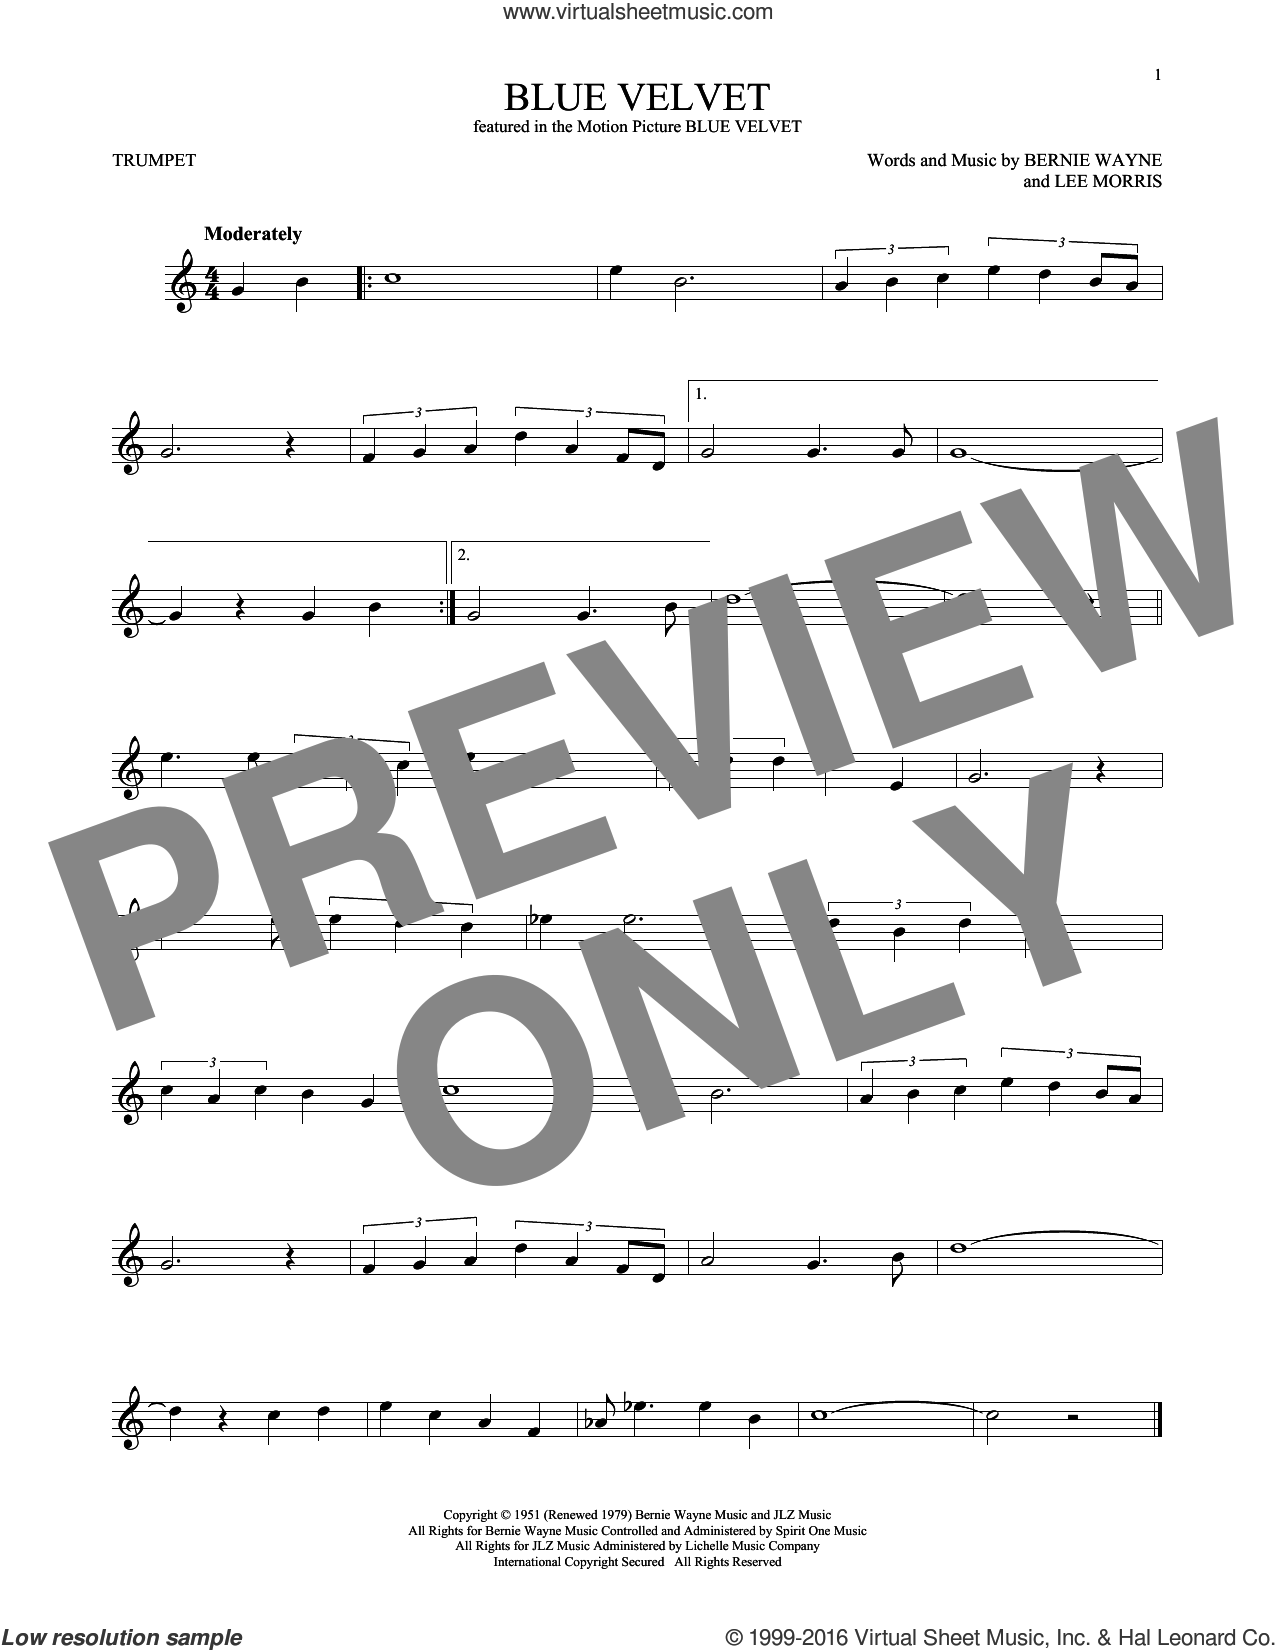 Blue Velvet sheet music for trumpet solo by Bobby Vinton, Statues, Bernie Wayne and Lee Morris, intermediate skill level